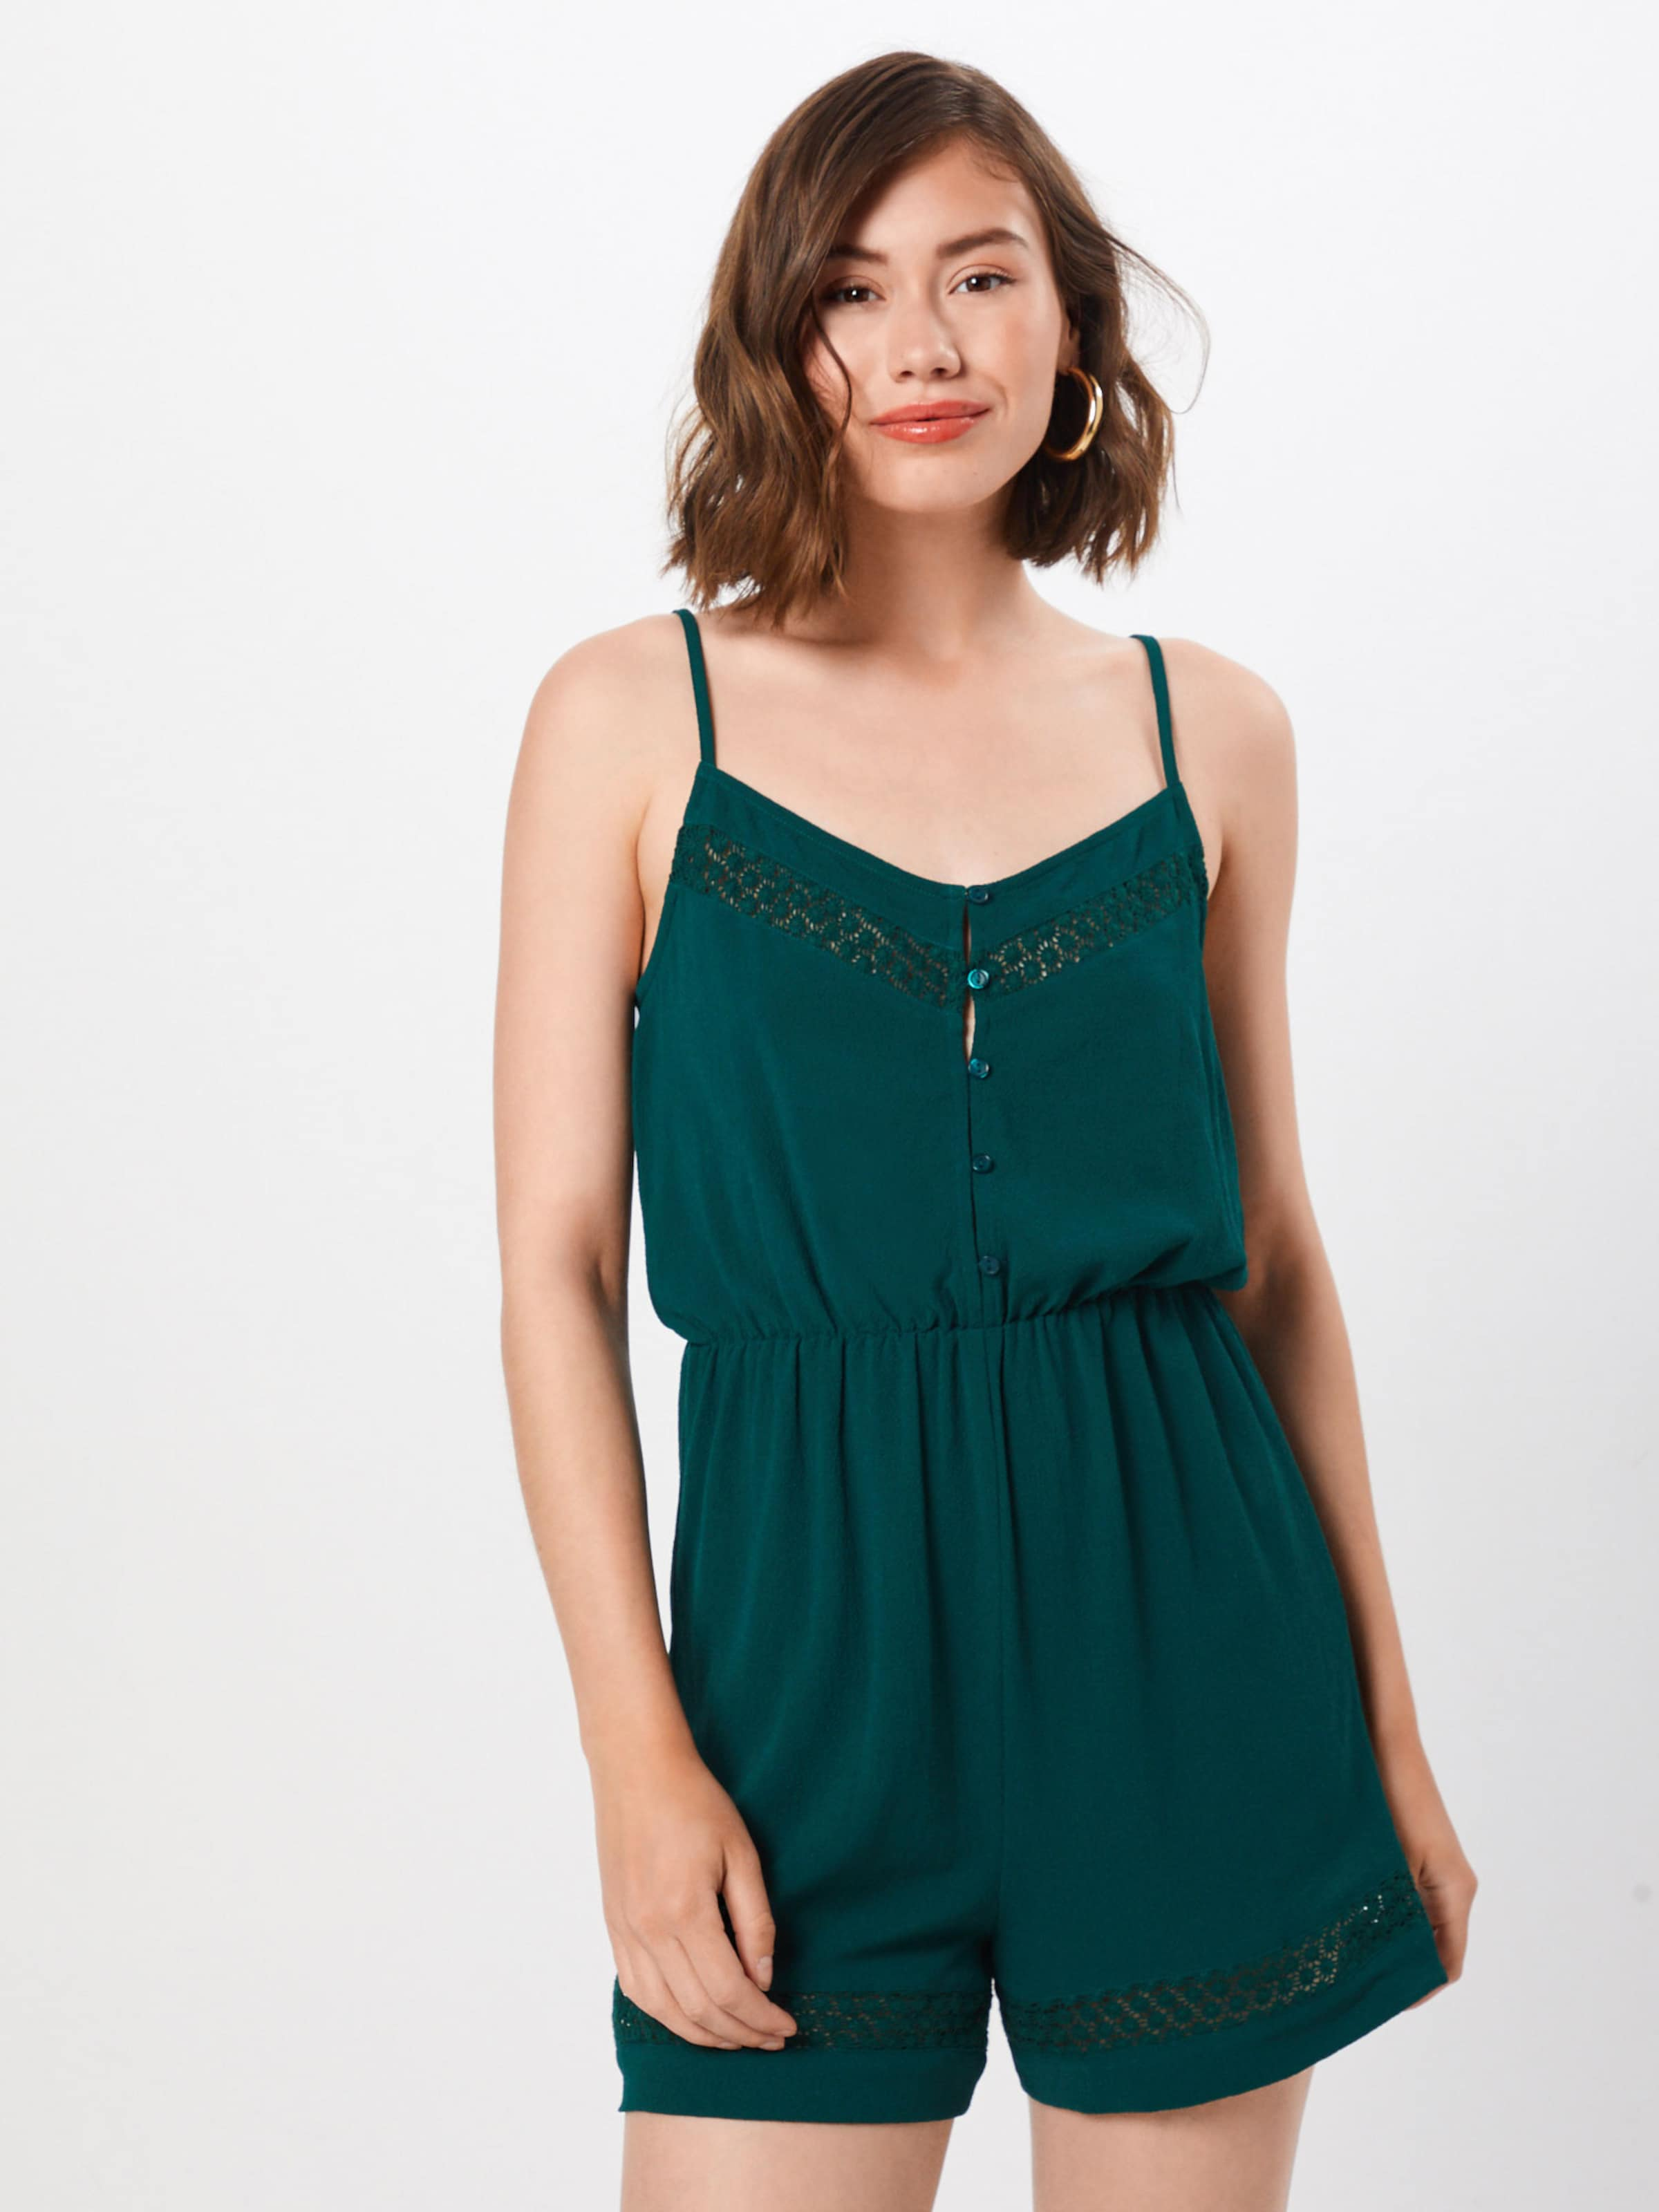 'nathalie' You Jumpsuit In Dunkelgrün About OXPkZui